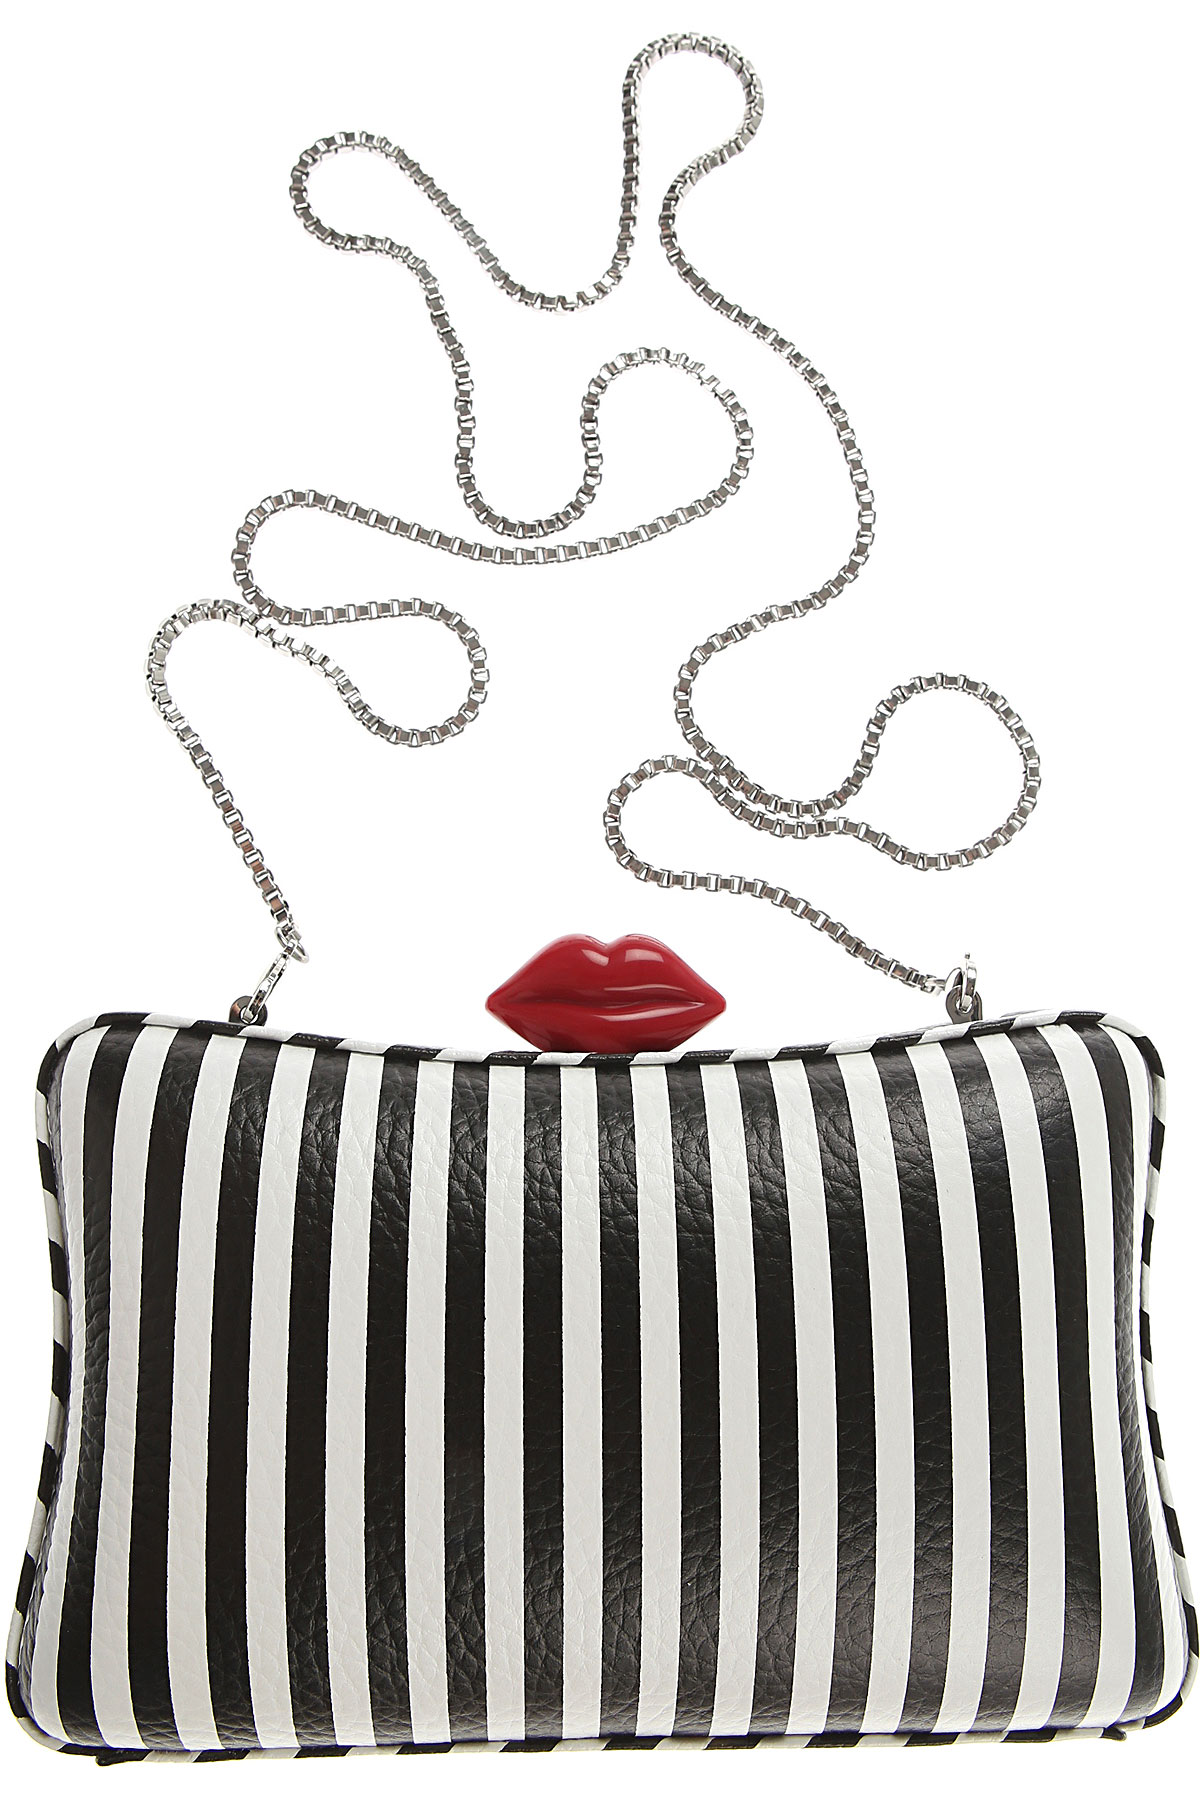 Image of Lulu Guinness Clutch Bag, White, Leather, 2017